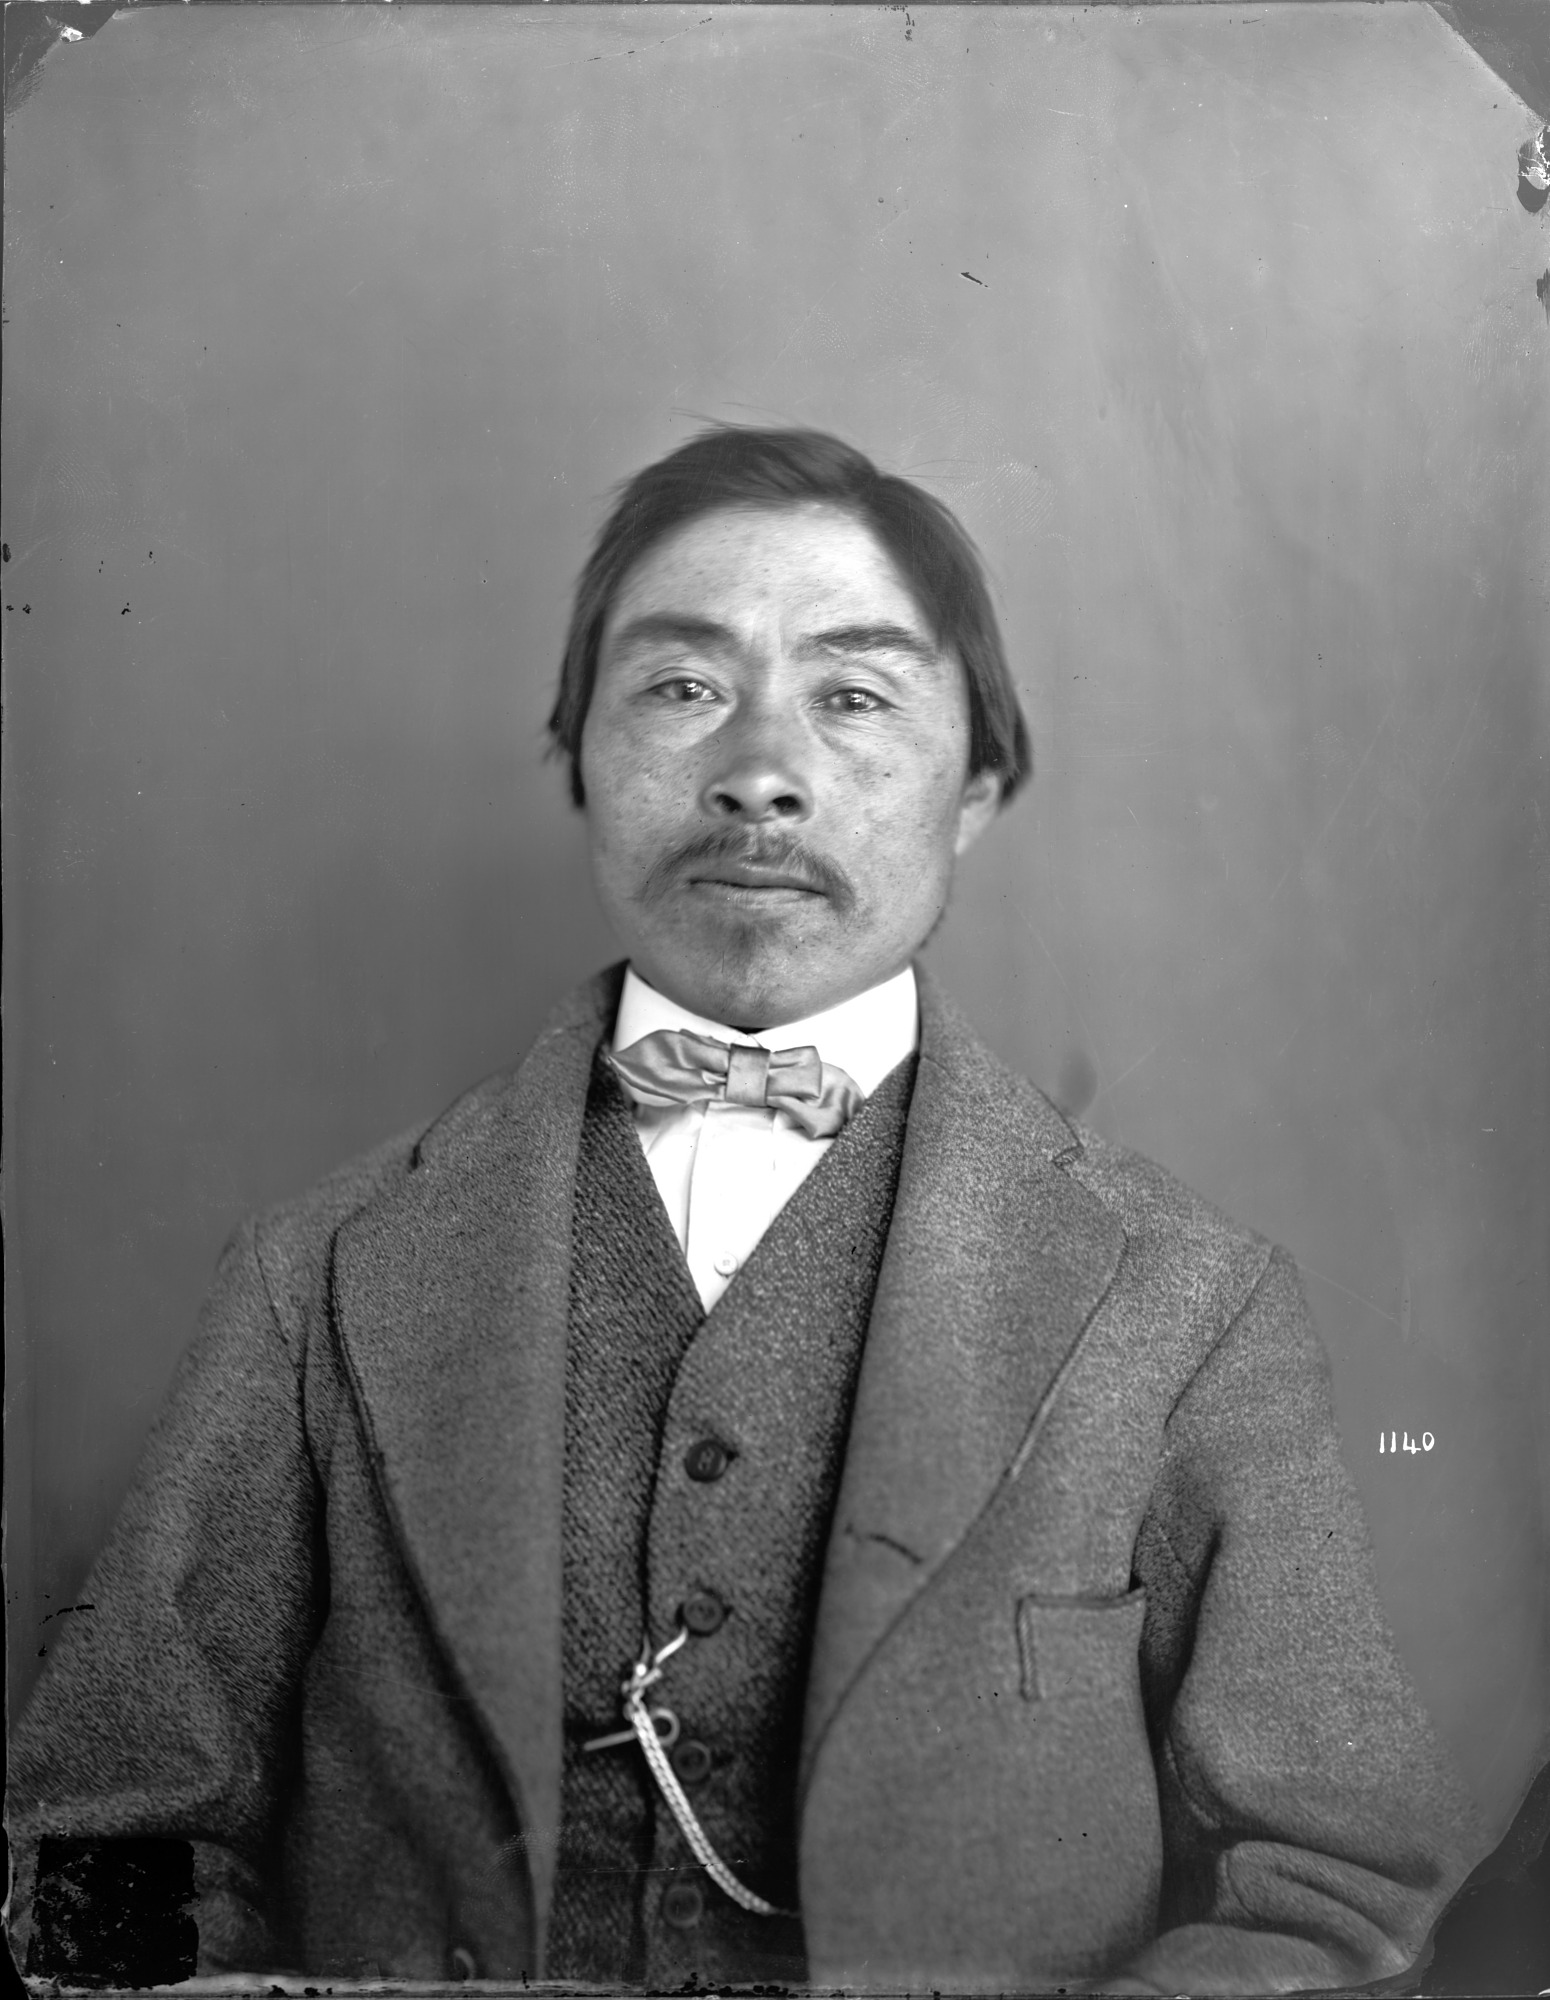 Portrait of Unidentified Man, 1880, Smithsonian Institution Archives, SIA Acc. 11-006 [MAH-1140].